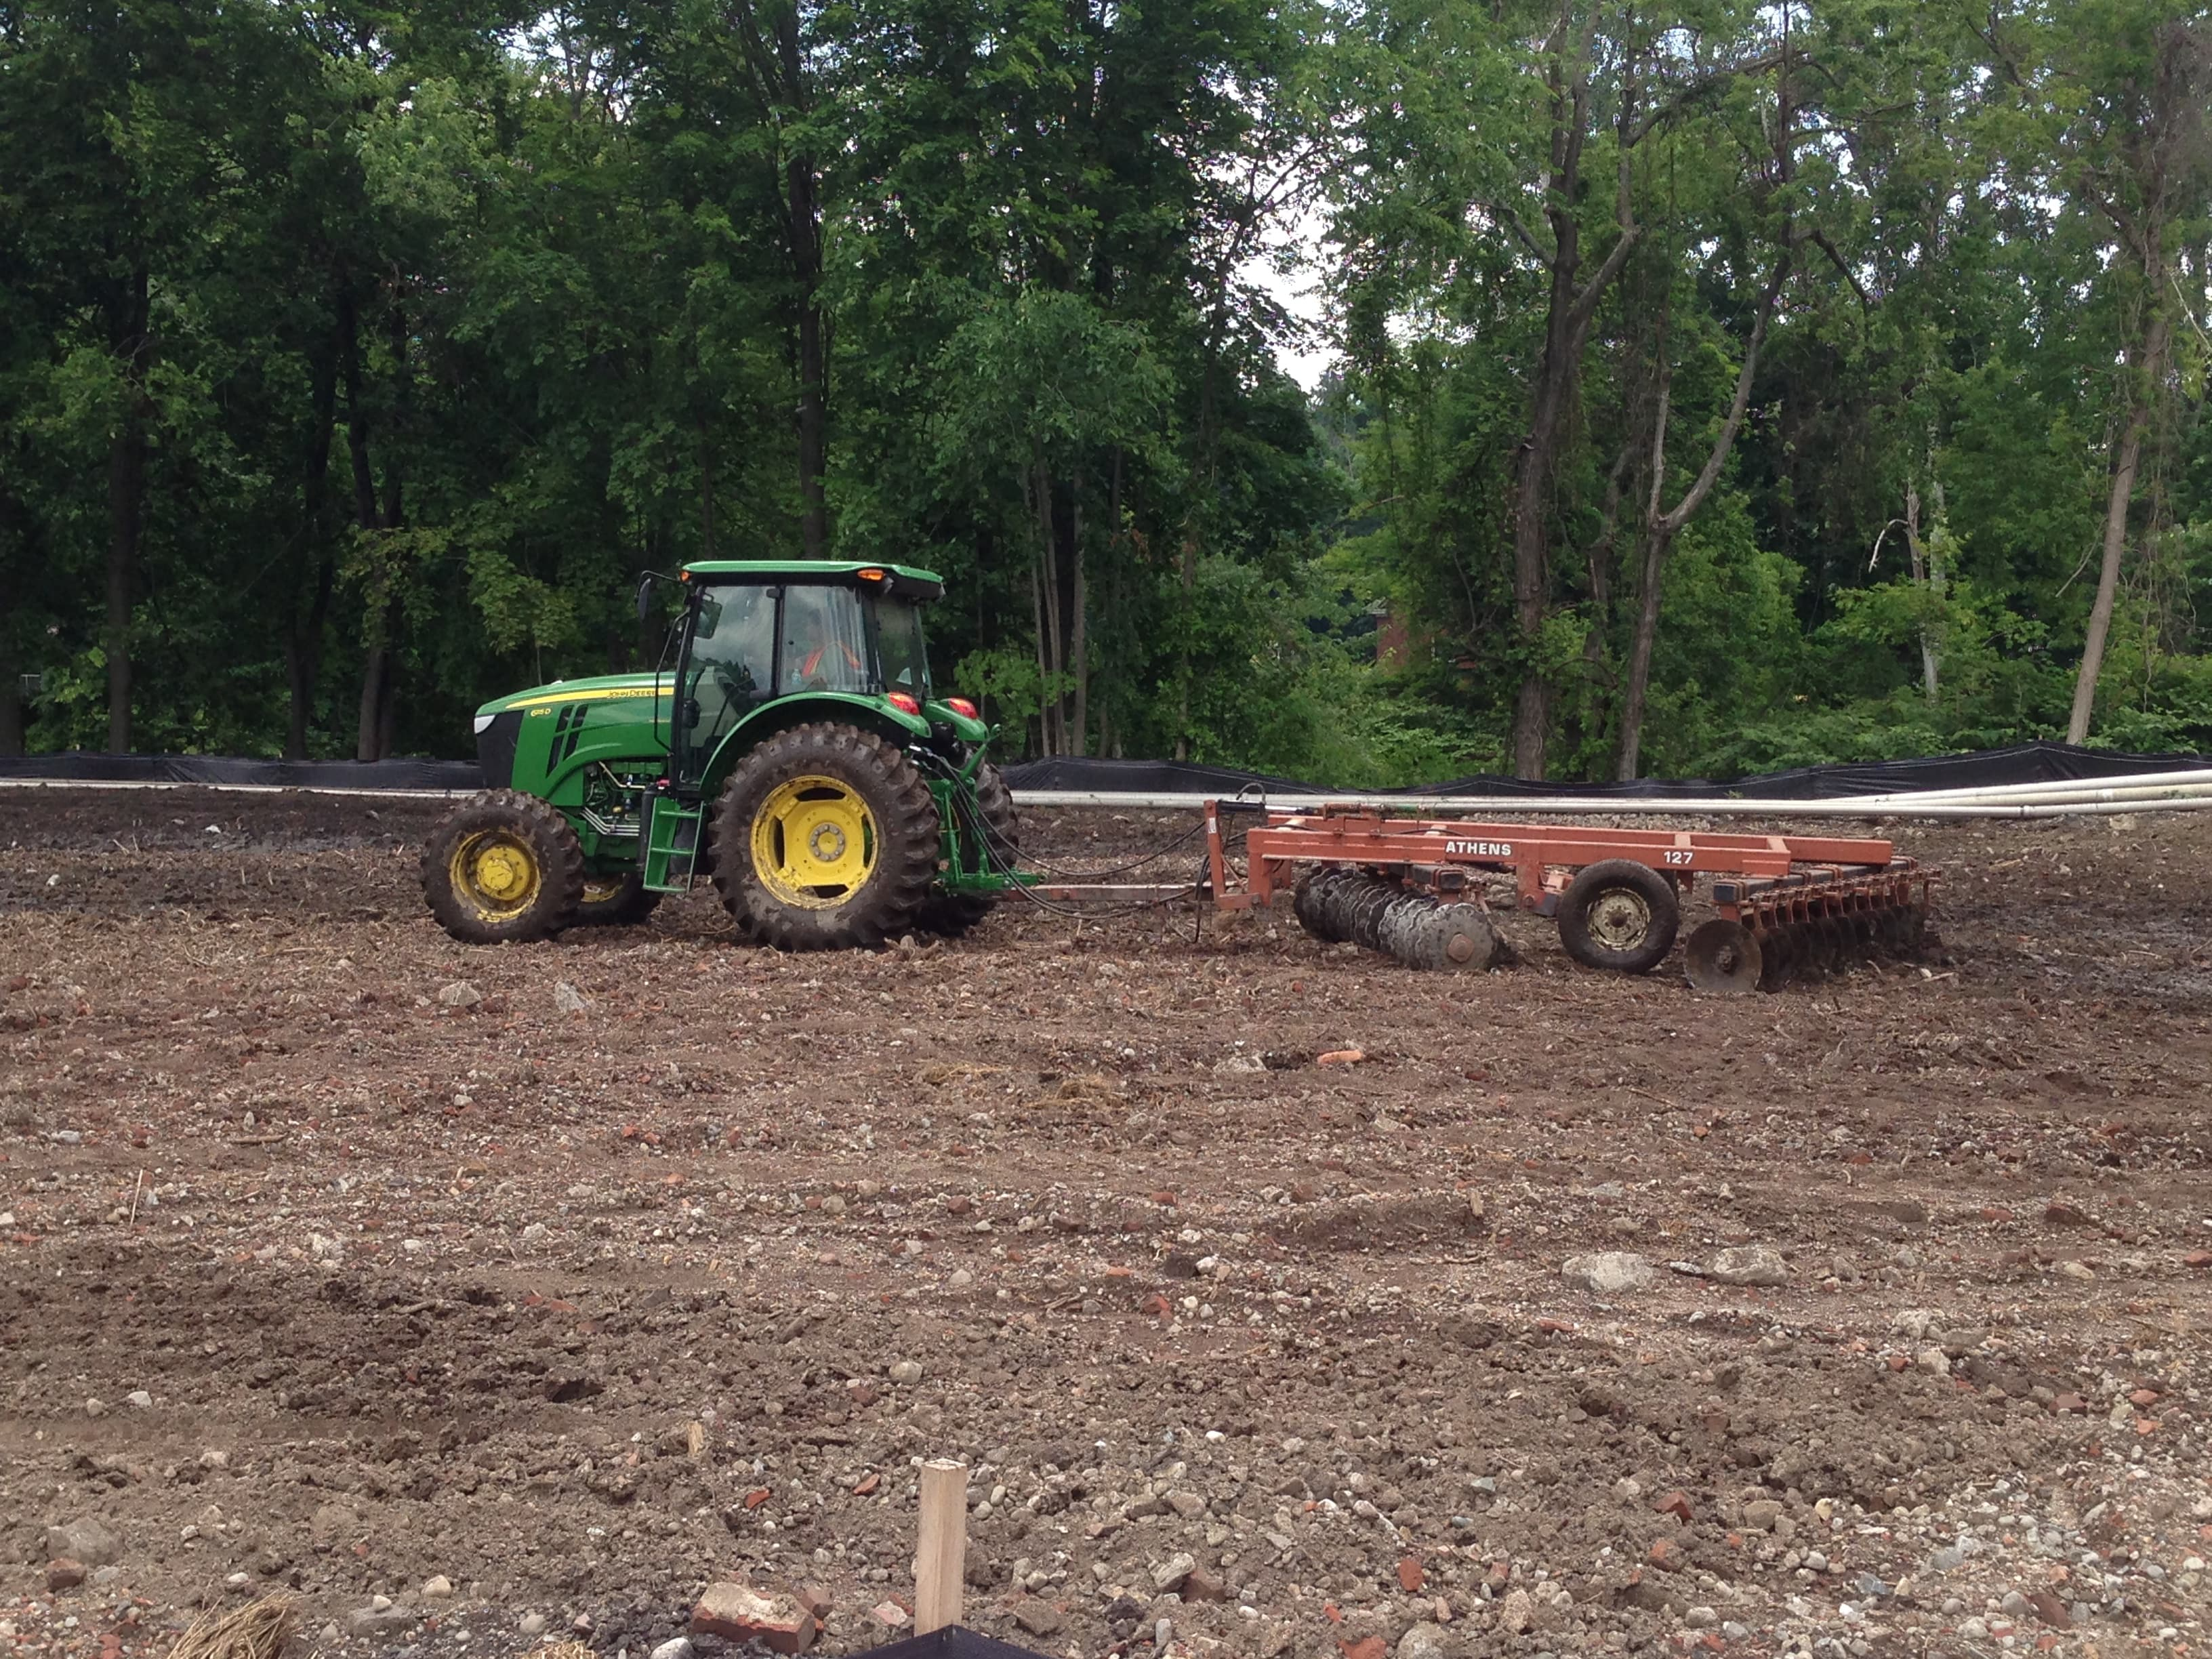 The organic material to break down dioxins was tilled into the soil.